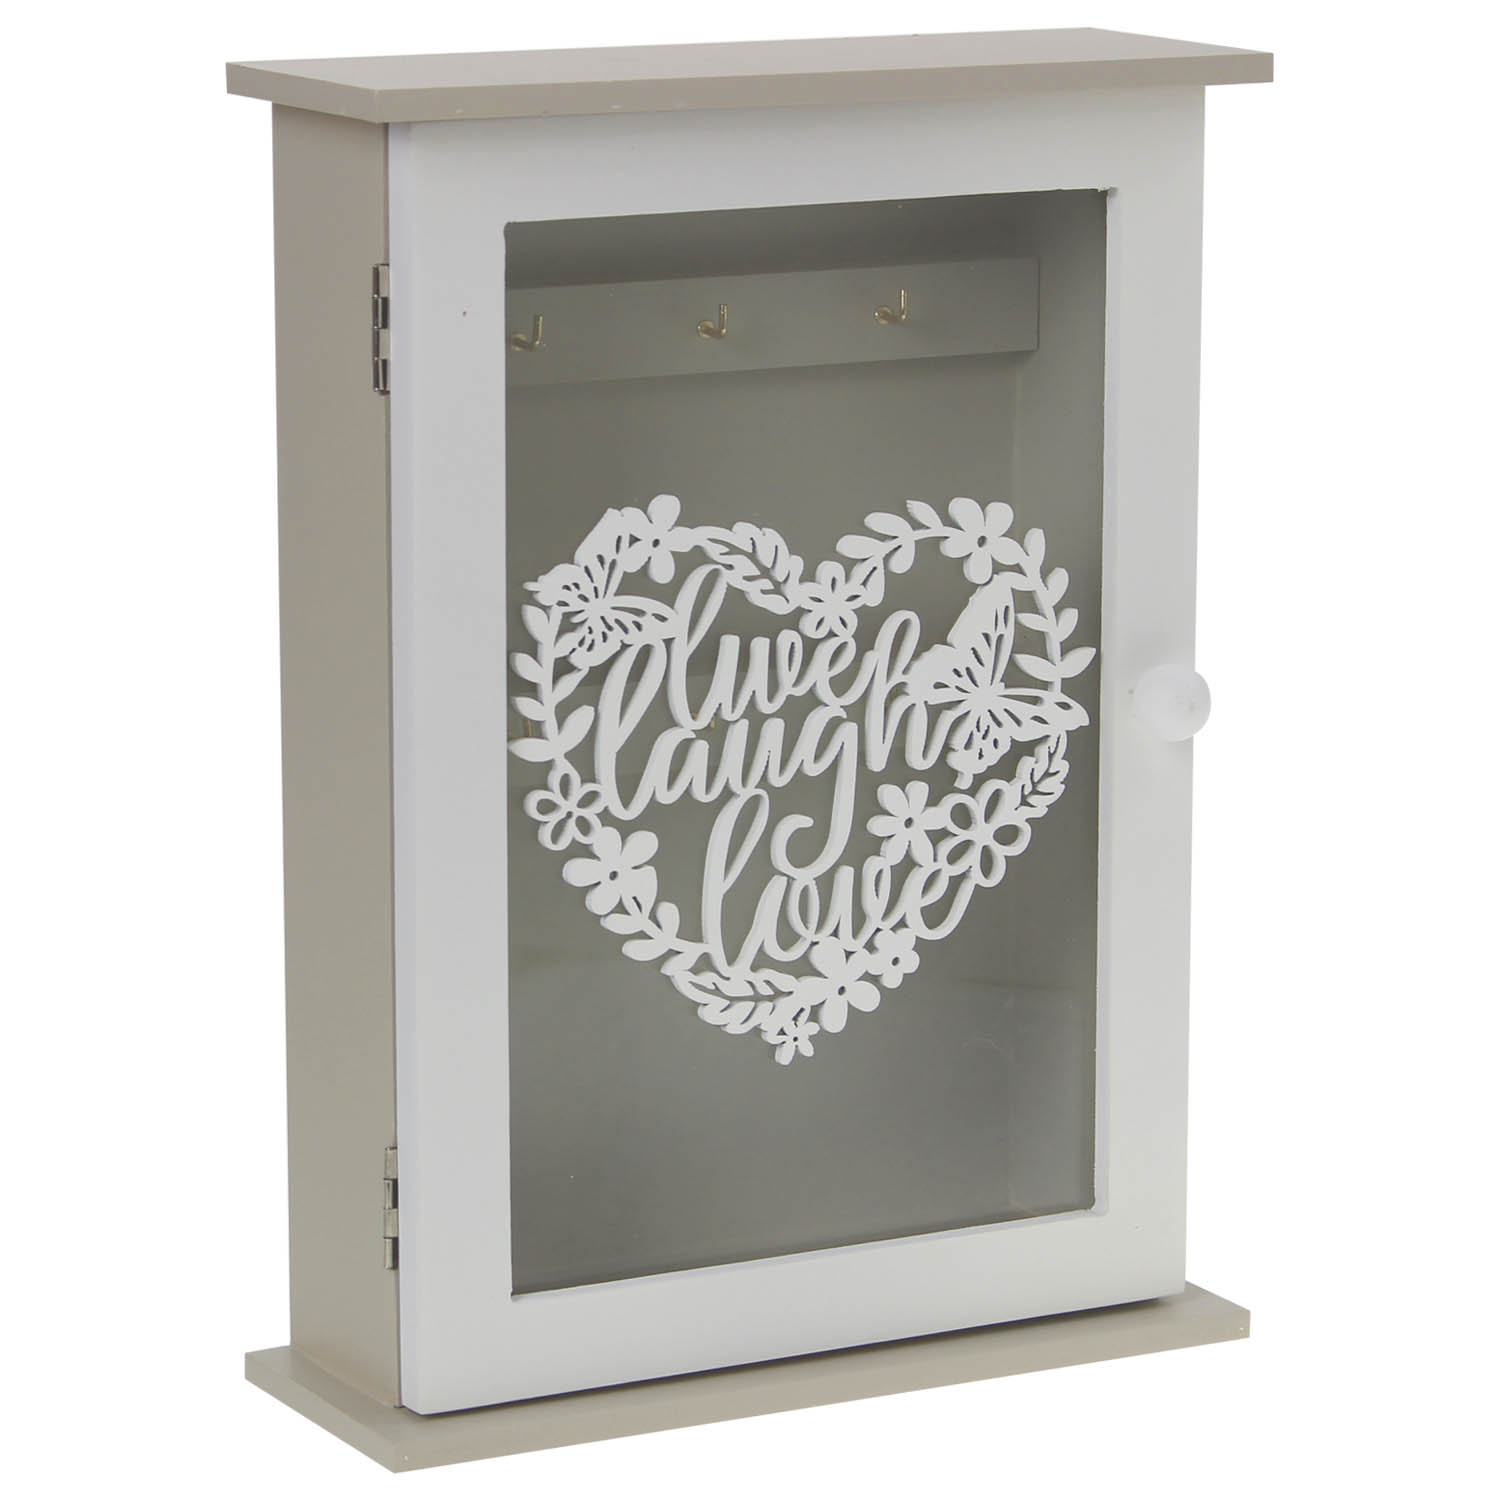 Cutout Live Laugh Love Heart Free Stand Key Box Keys Holder Cupboard Storage